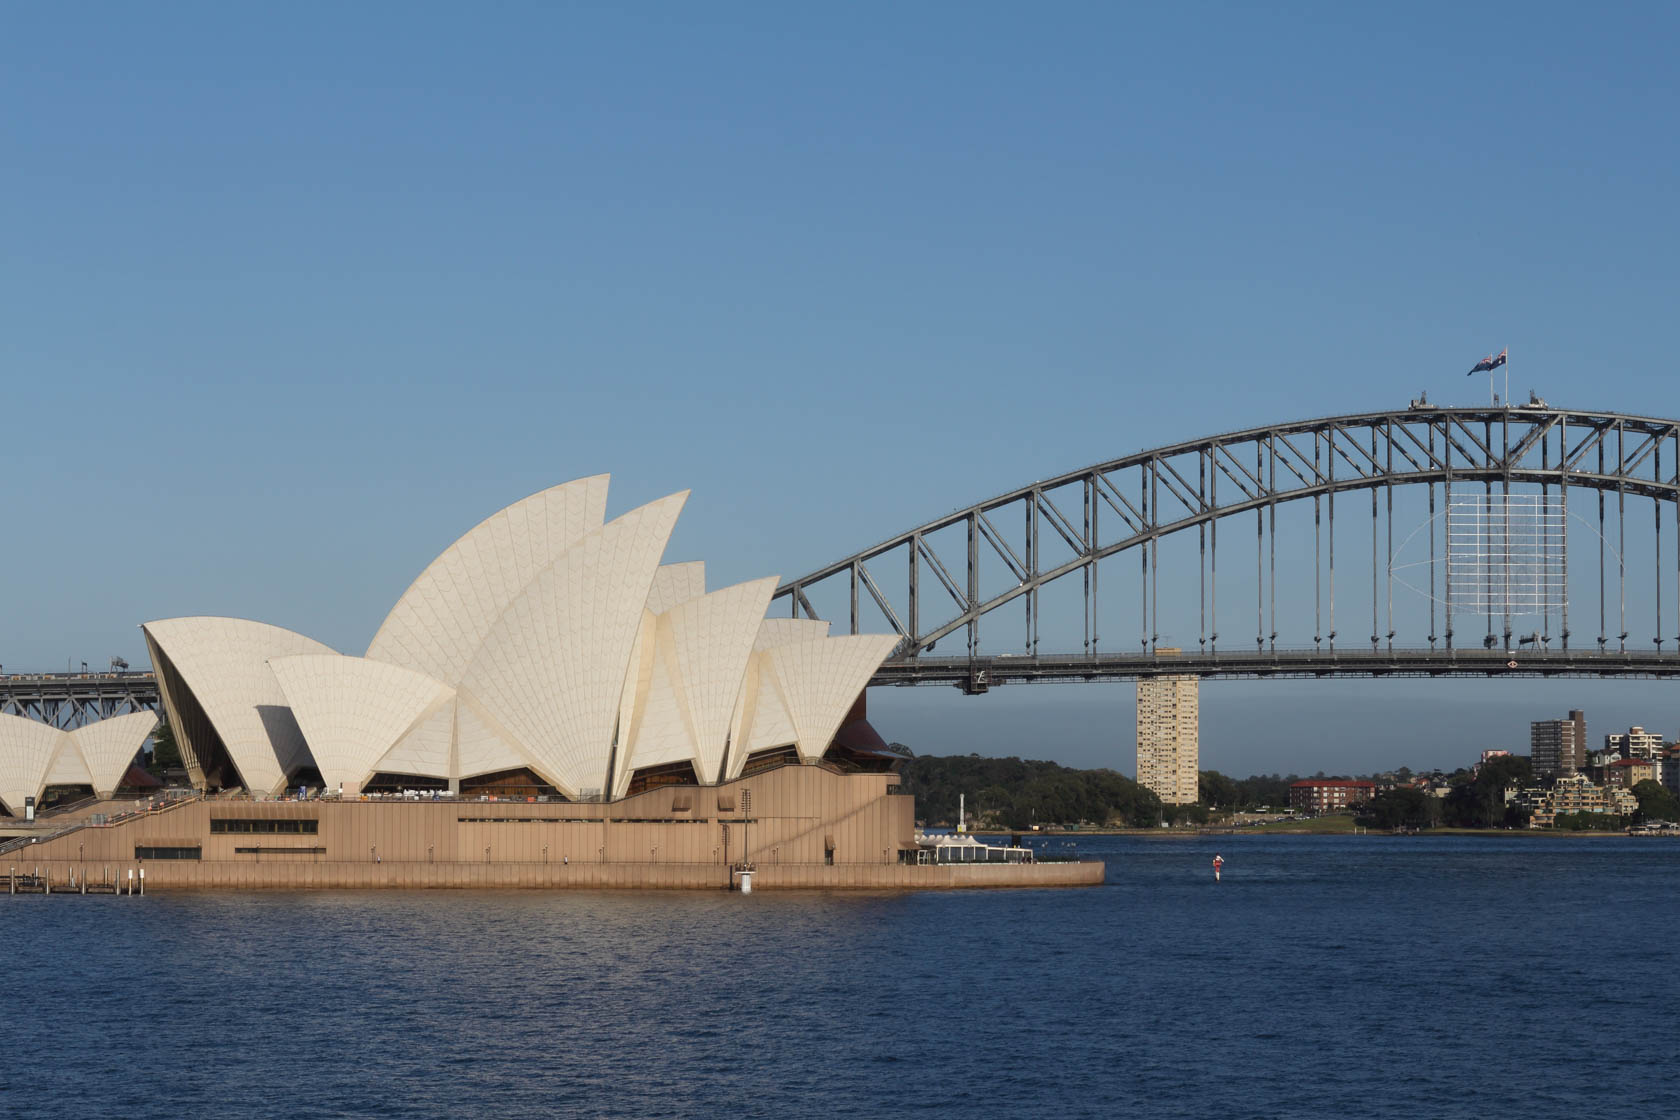 Sydney Opera House and Sydney Harbour Bridge taken with Canon EF-M 55-200 IS STM lens